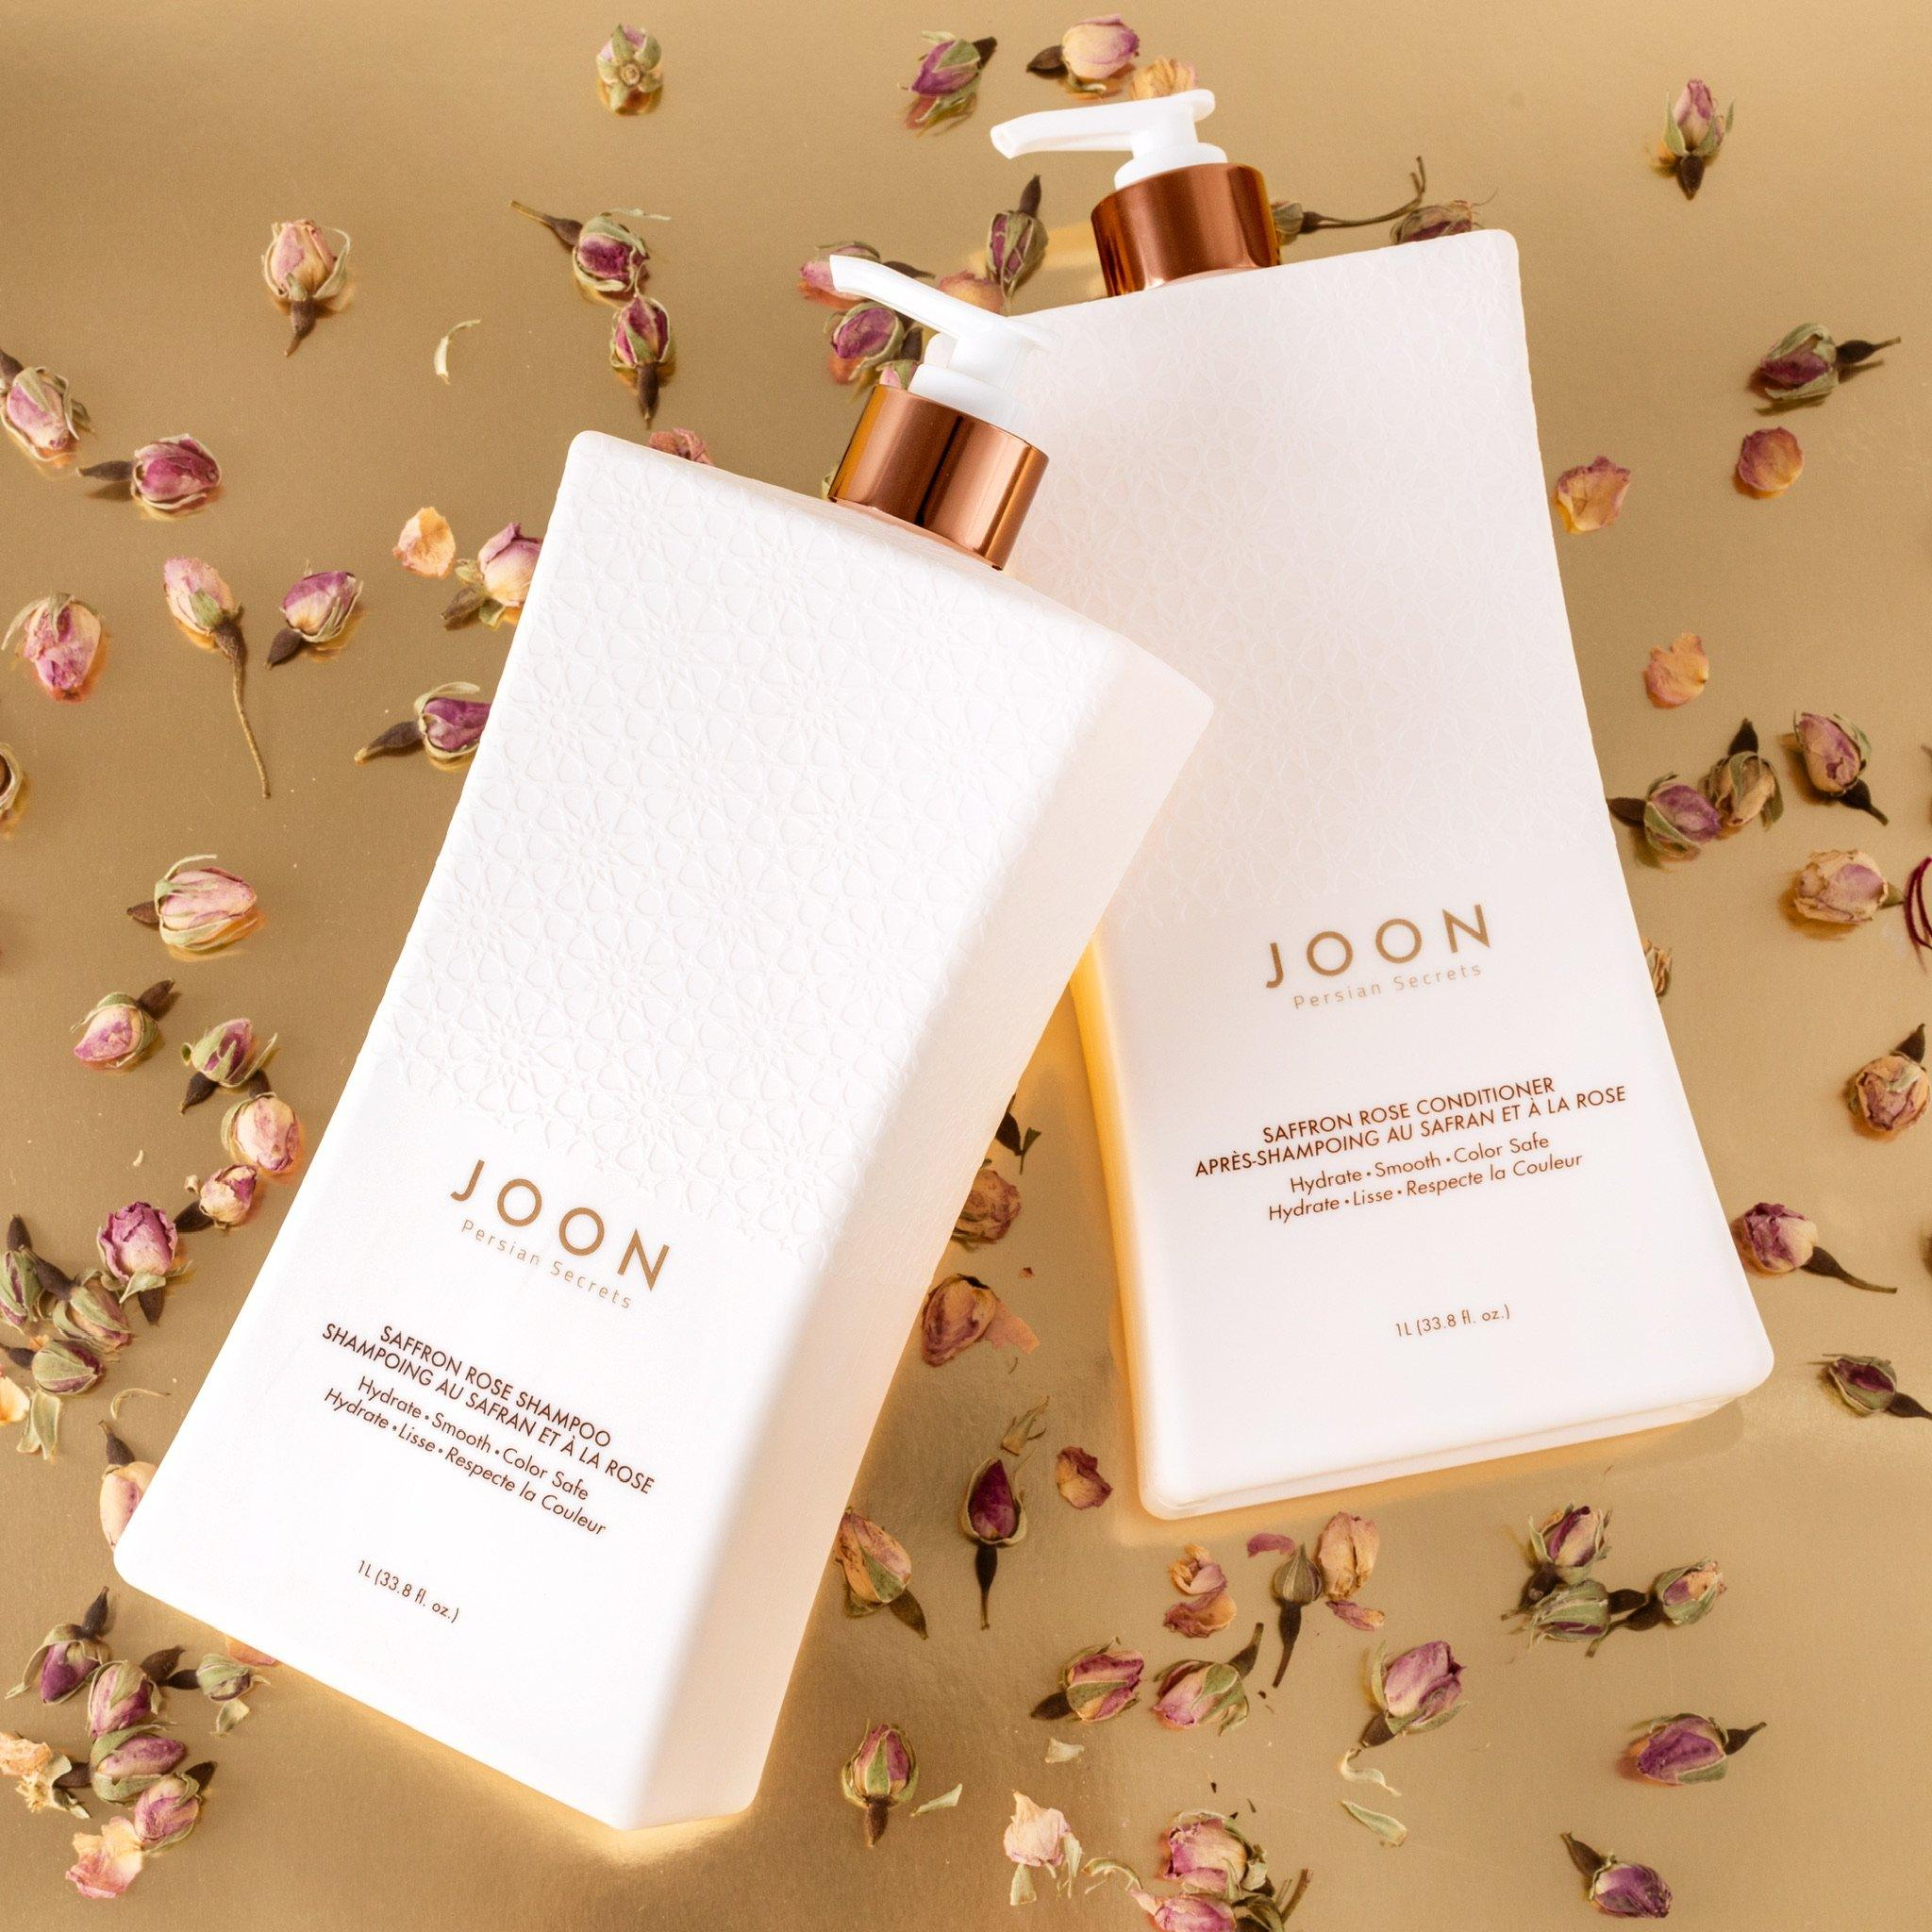 Joon Intro Packages SHAMPOO AND CONDITIONER JOON